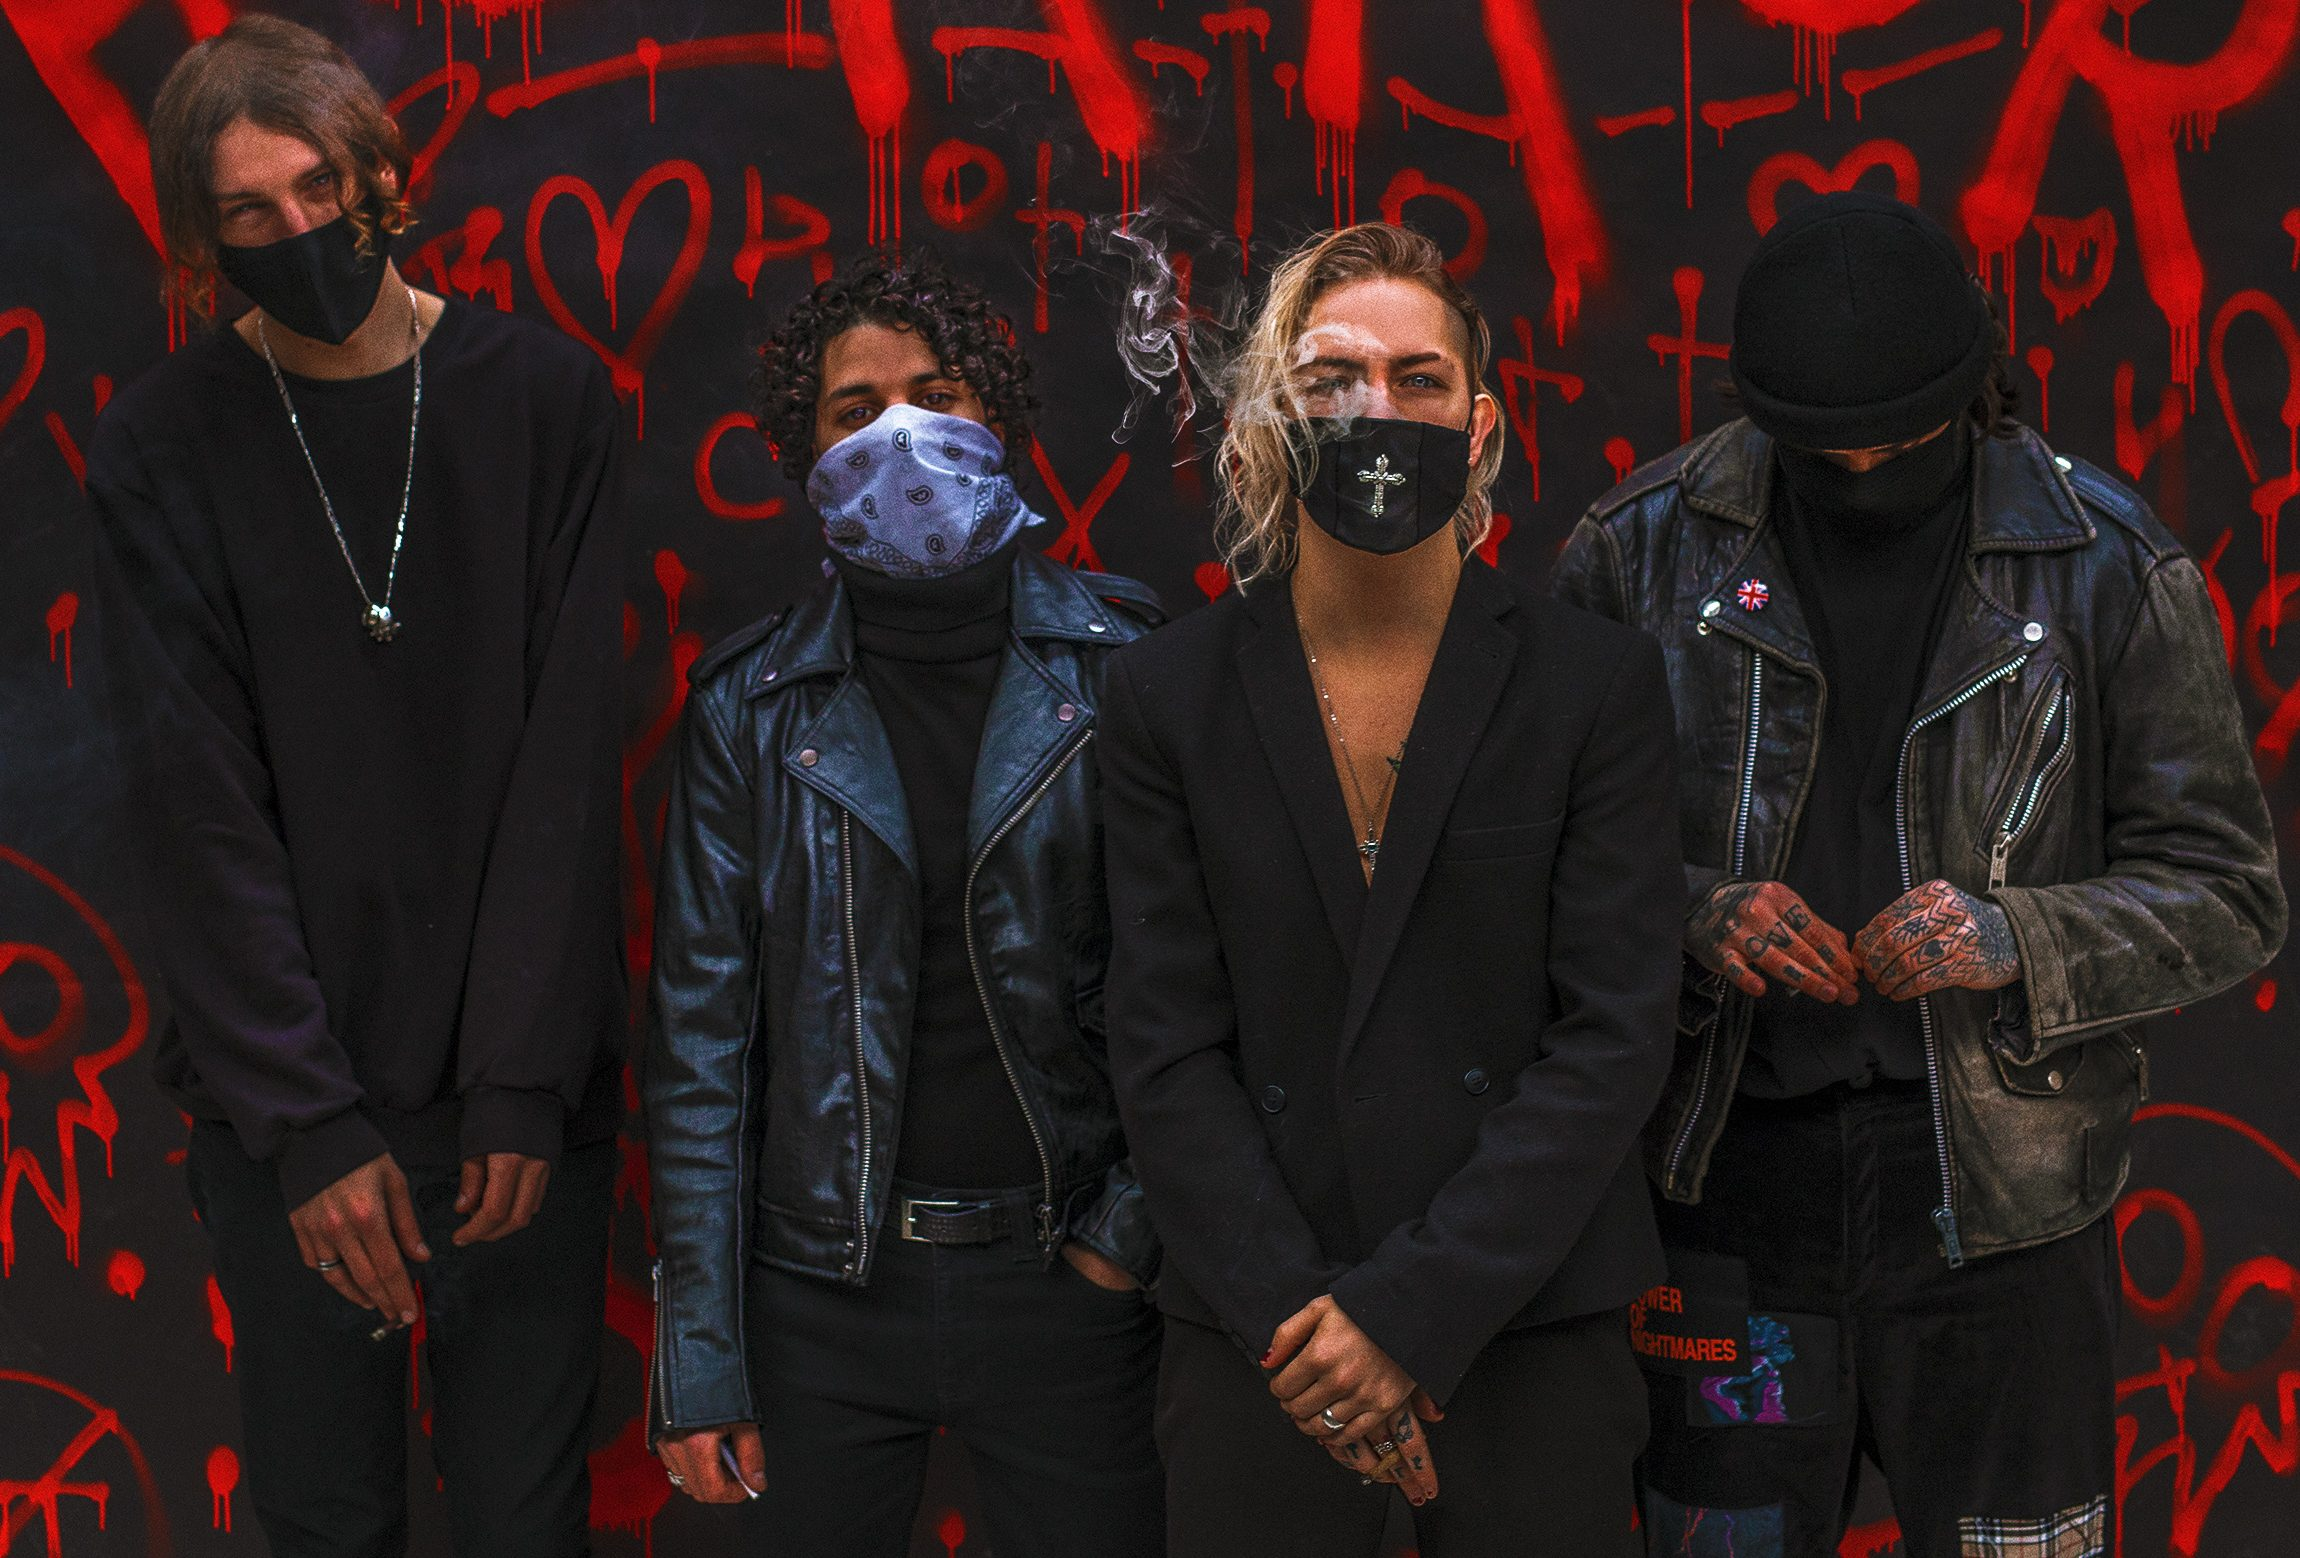 Interview: The Hunna on New Tour, New Music & Strange Fan Requests